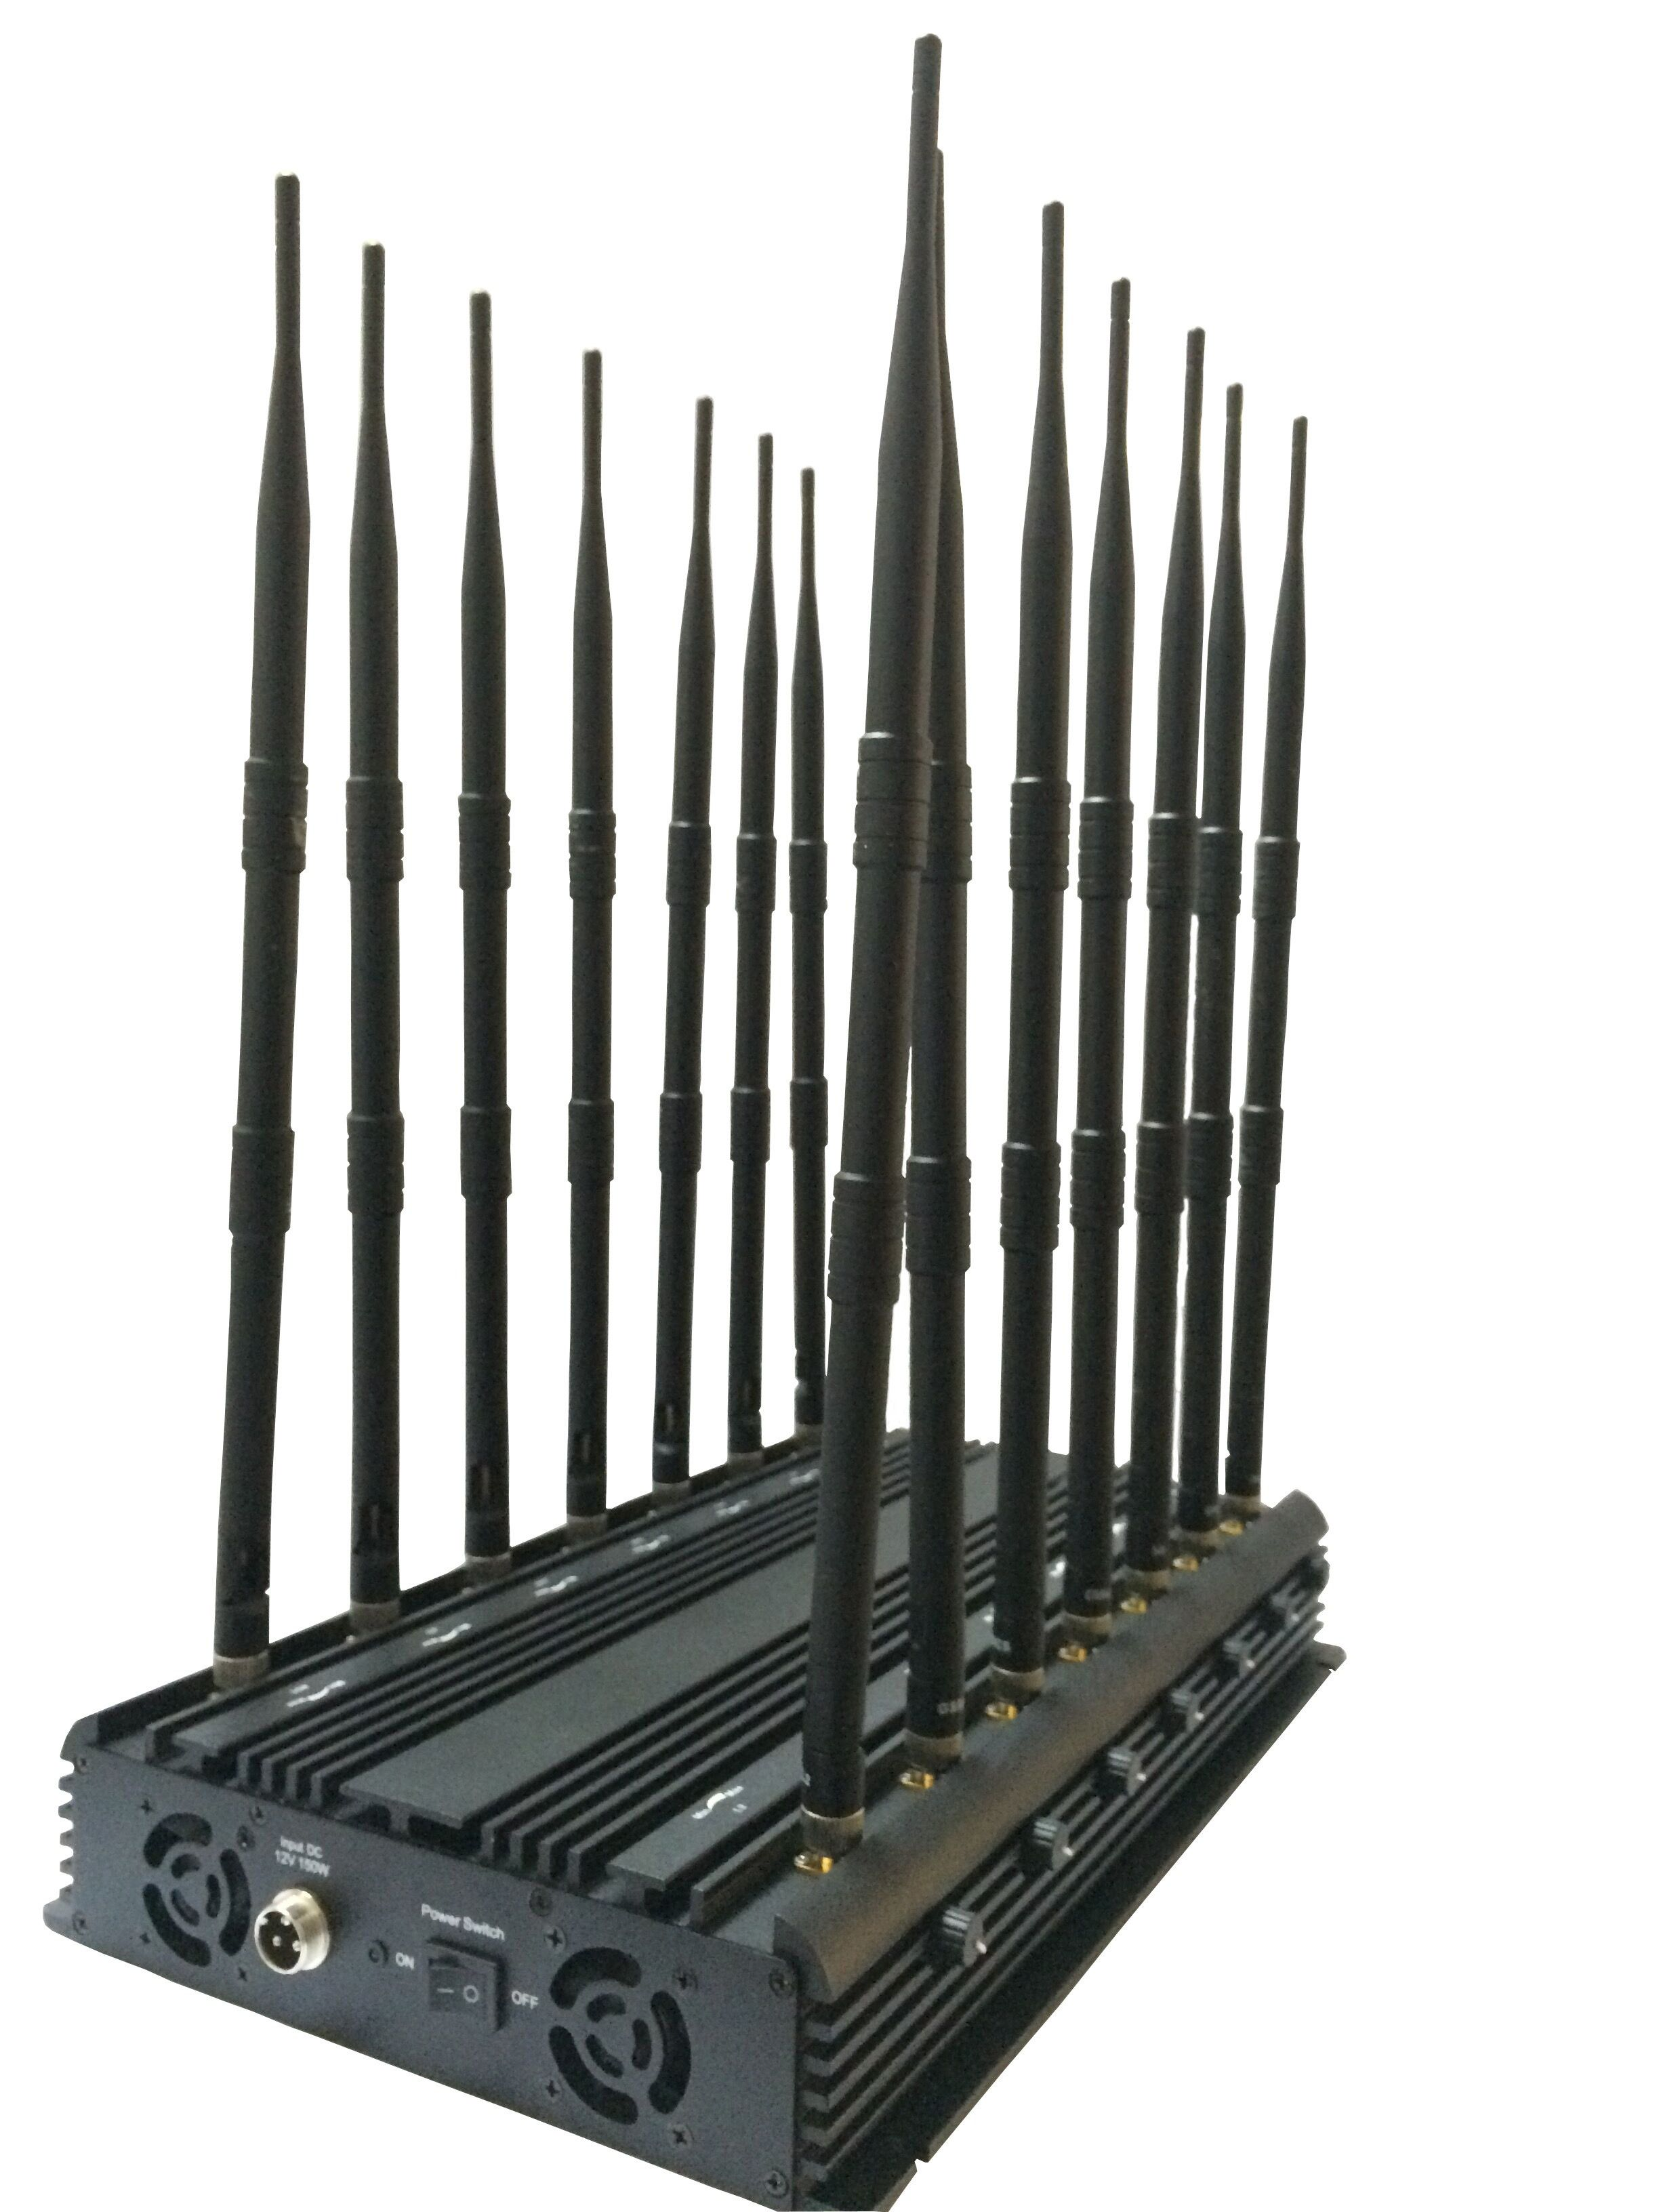 All Bands Powerful Cell Phone Jammer for sale 14 antennas